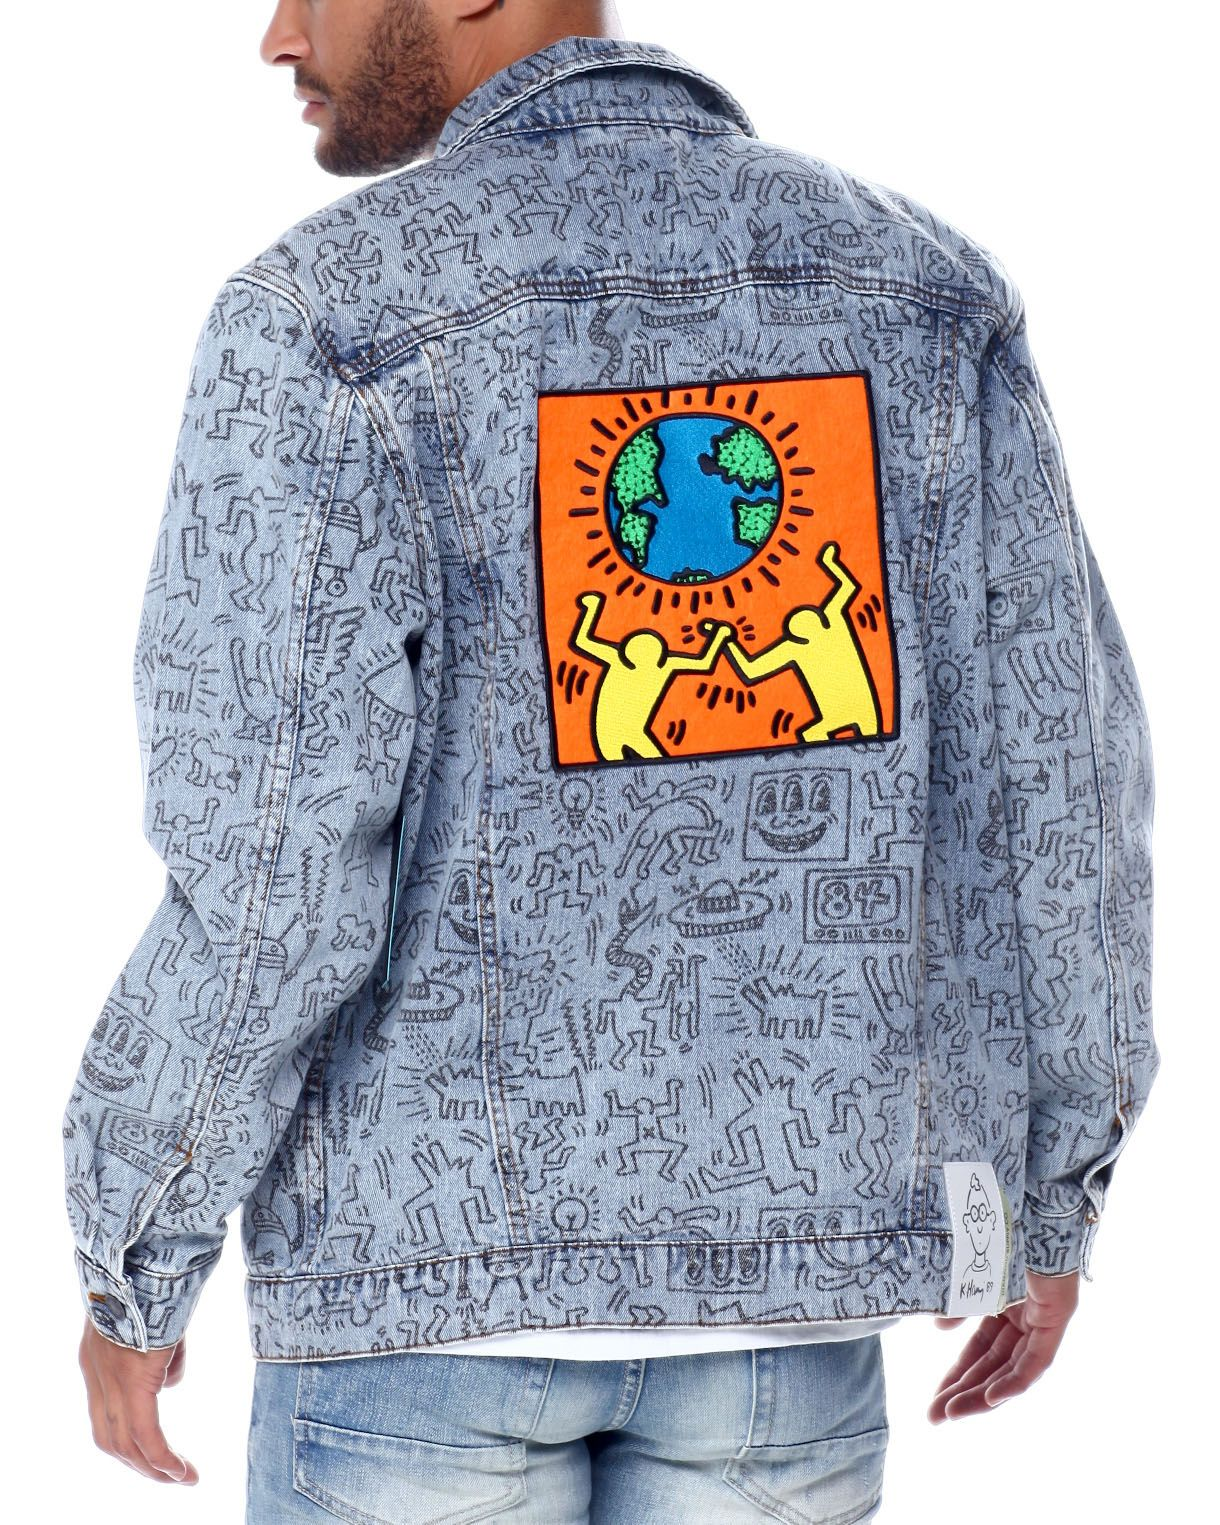 Stand Together T-Shirt SALE Diamond Supply X Keith Haring